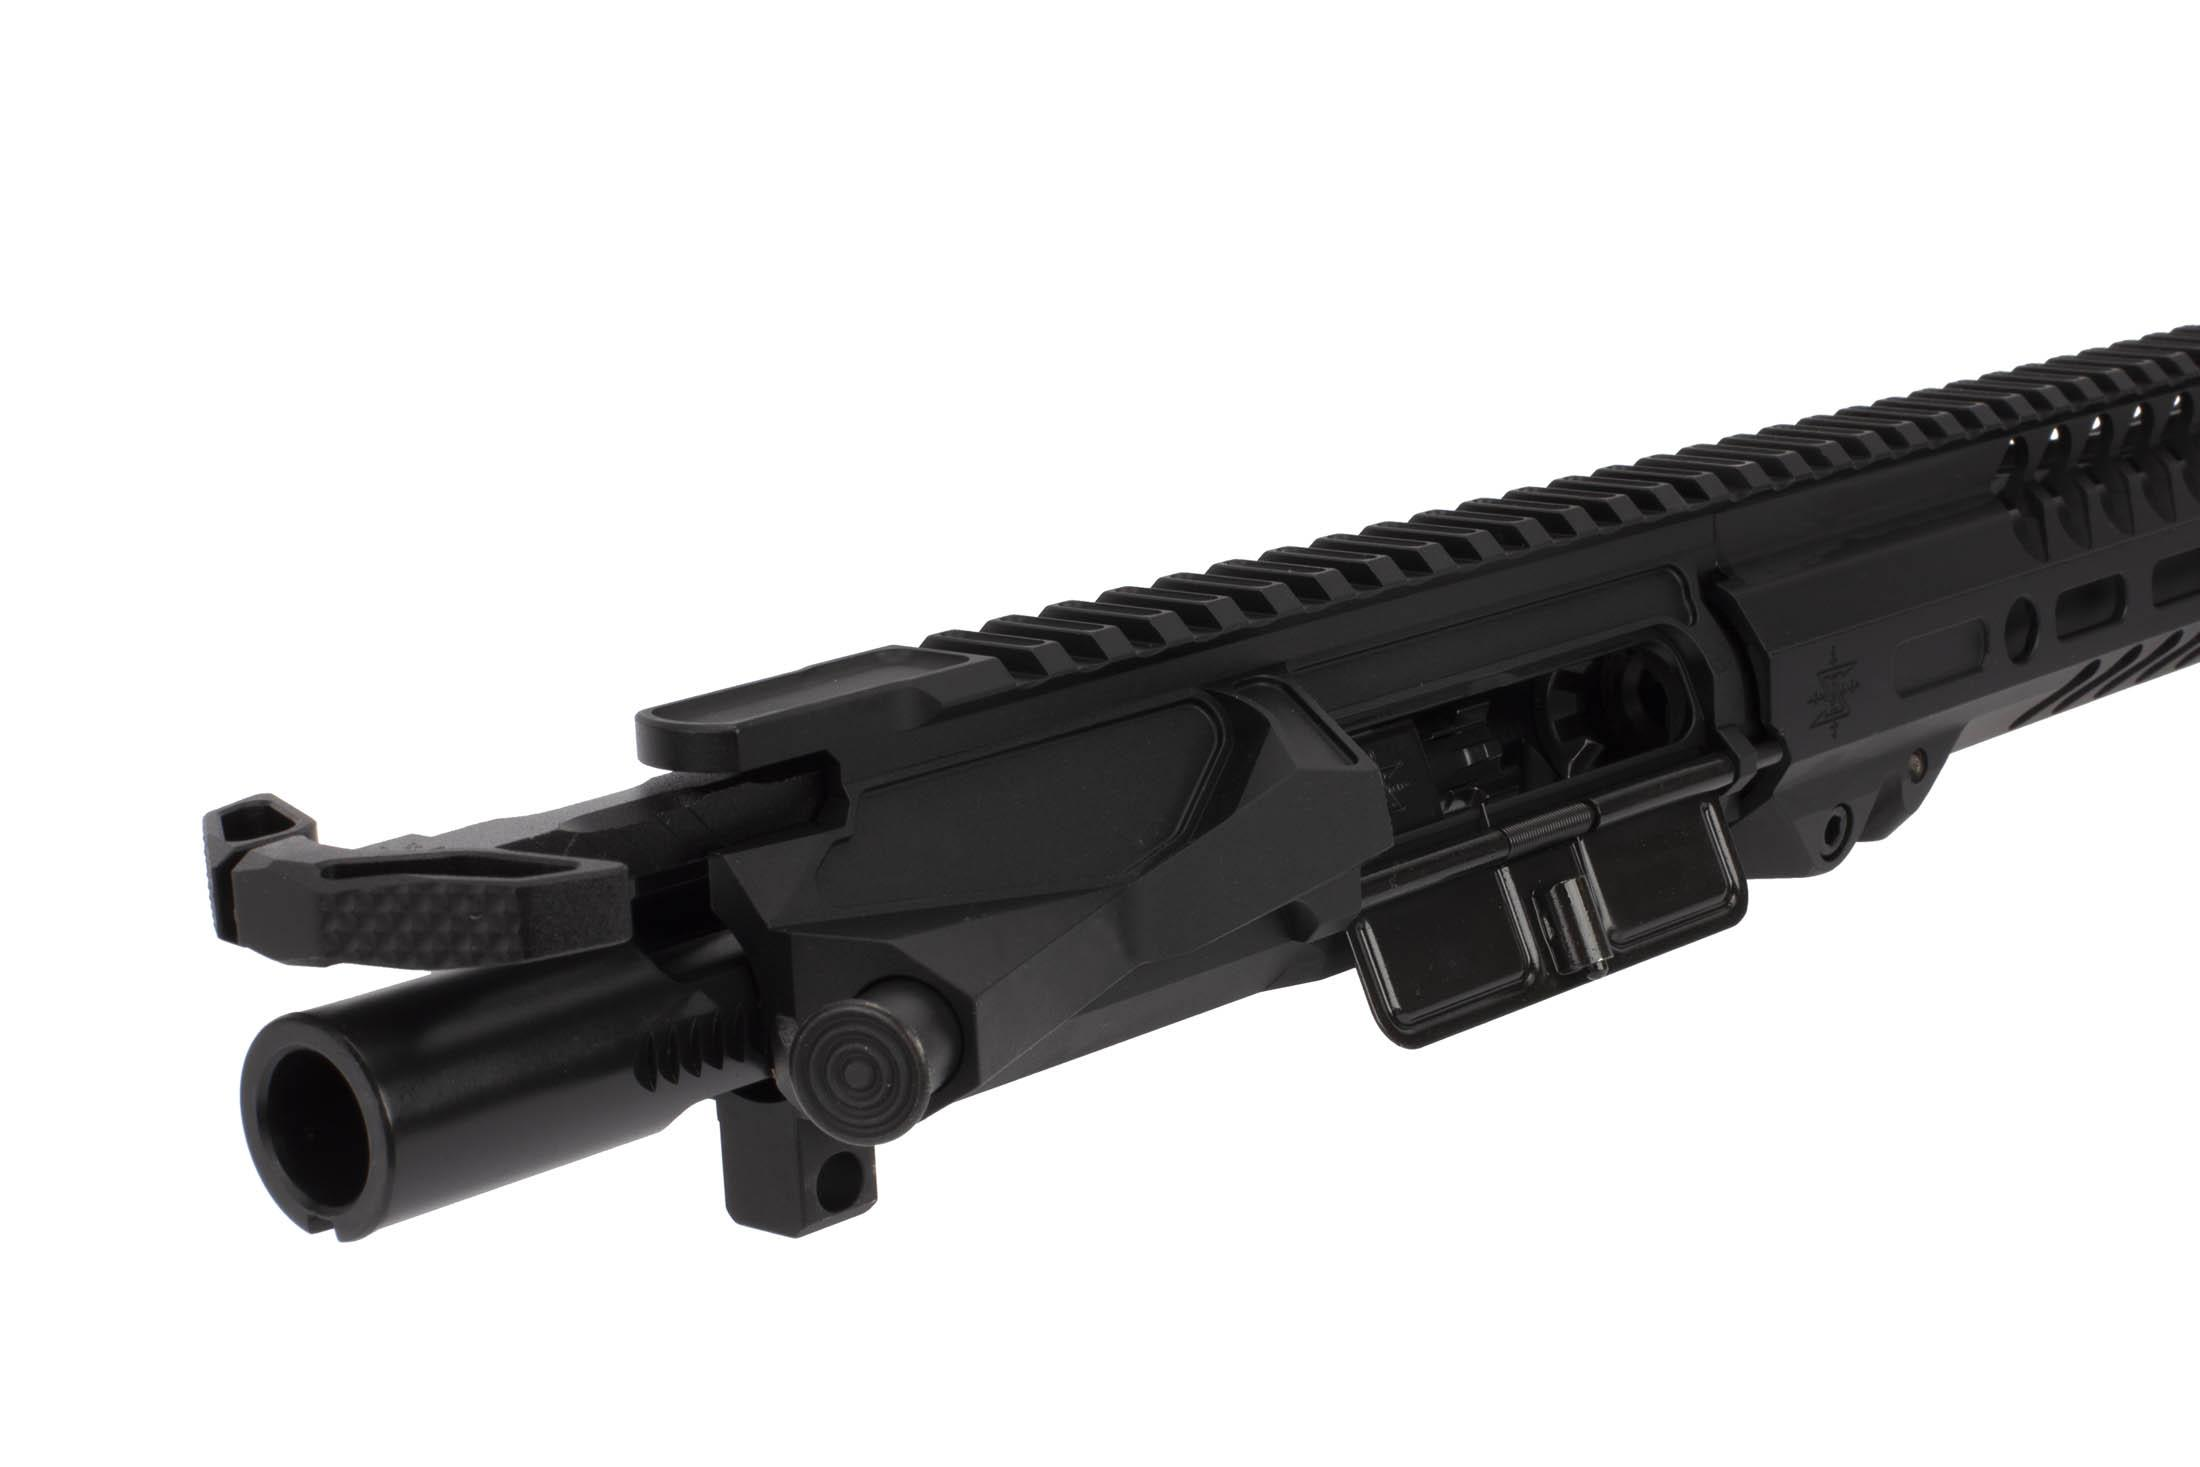 The Seekins Precision 14.5 NX14 Mid-Length Complete Upper includes an M16 cut bolt carrier group